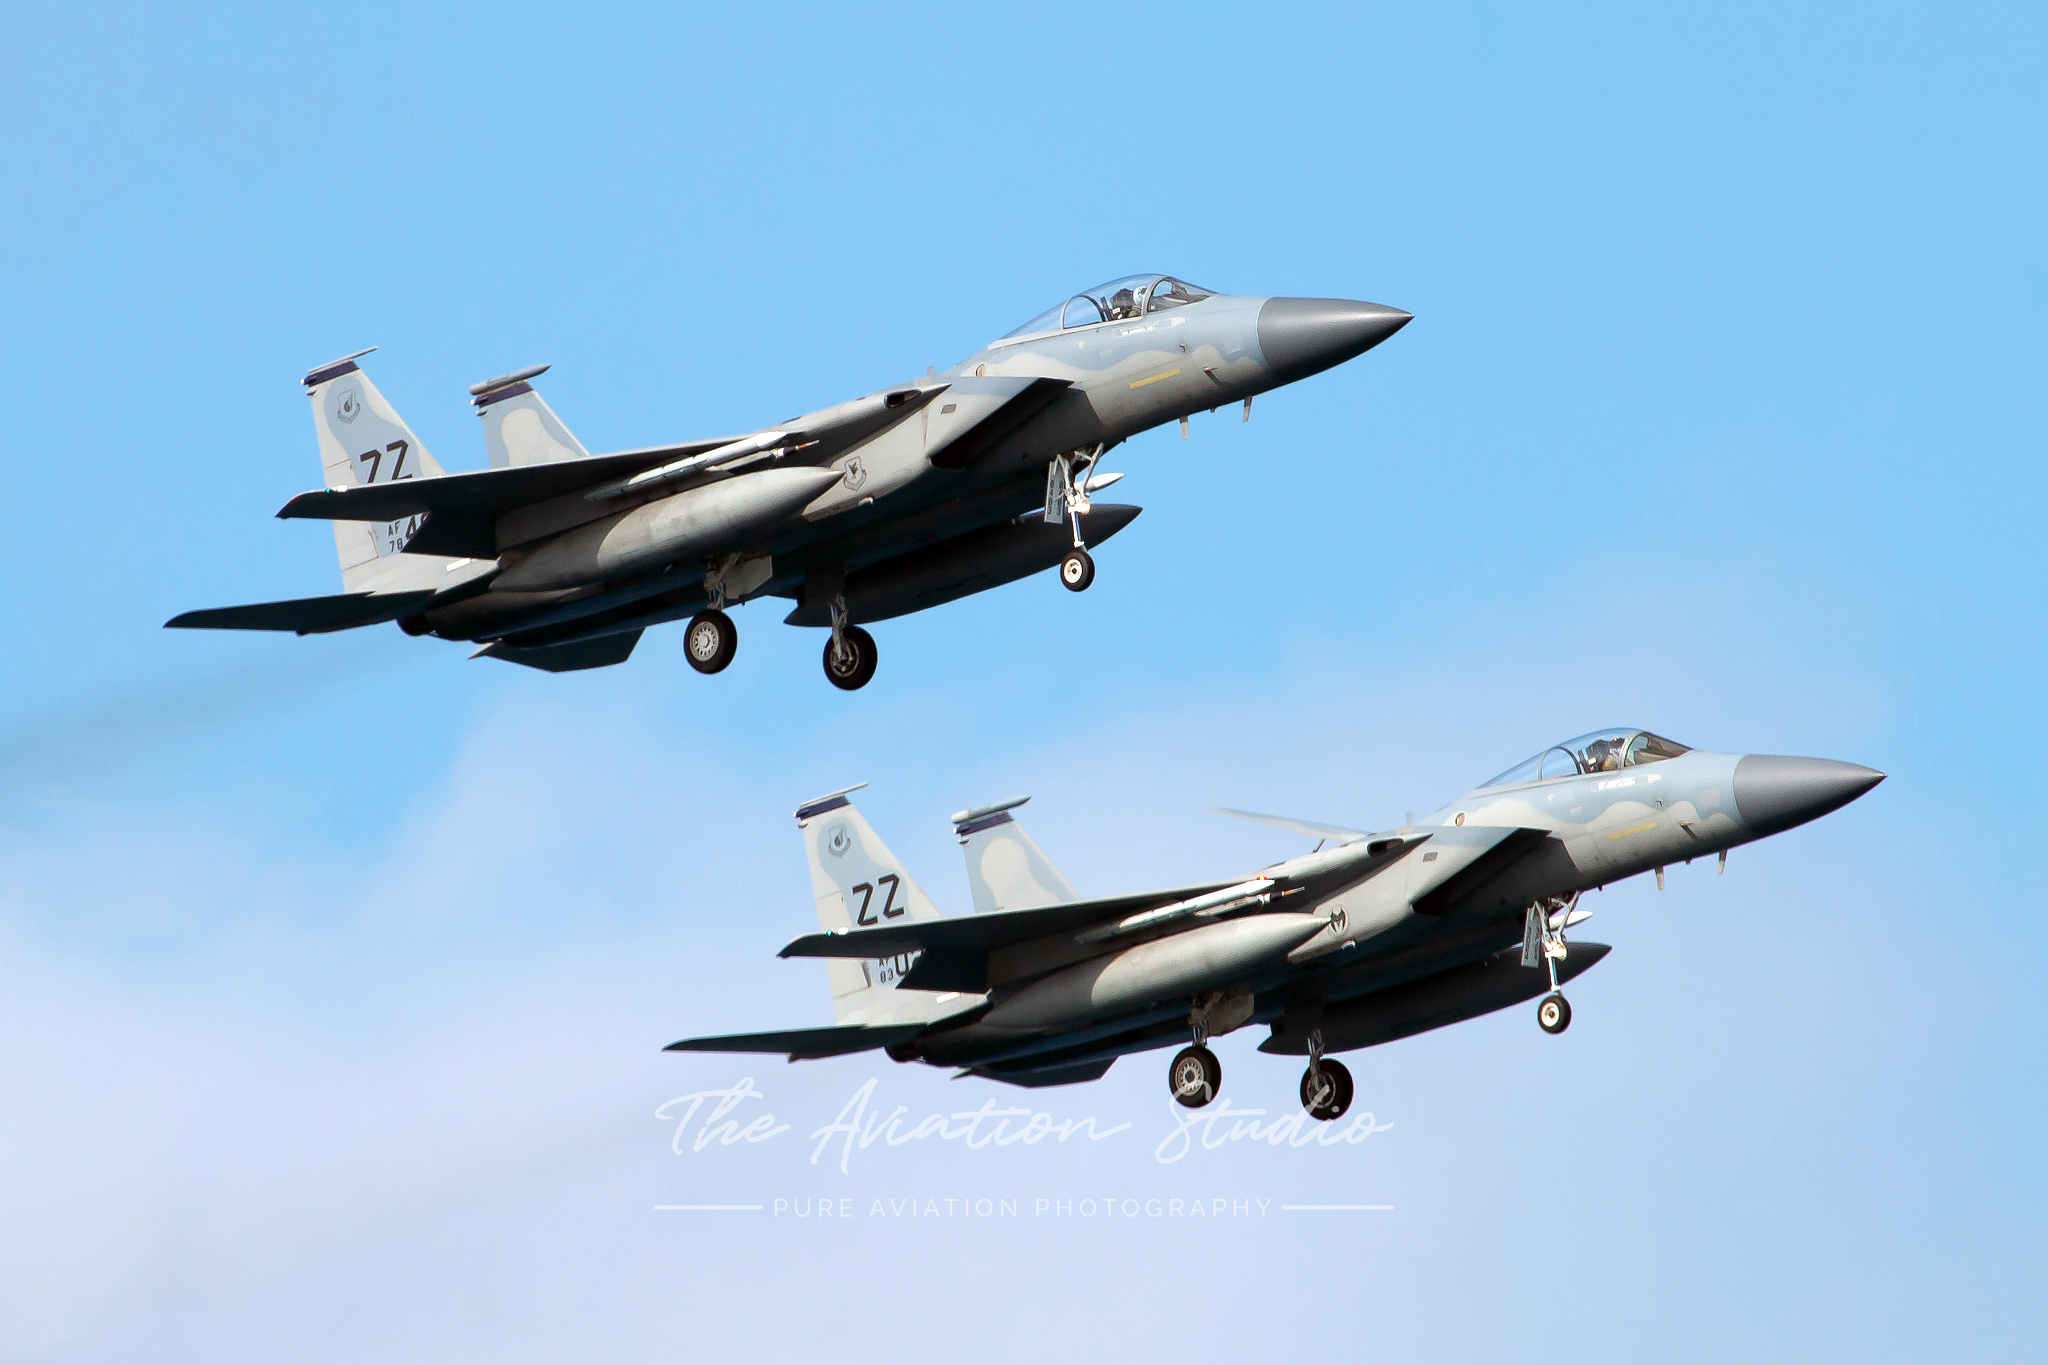 McDonnell Douglas F-15C Eagles 78-0483 and 83-0039 conducting a missed approach in close formation at Kadena (Image: Brock Little)